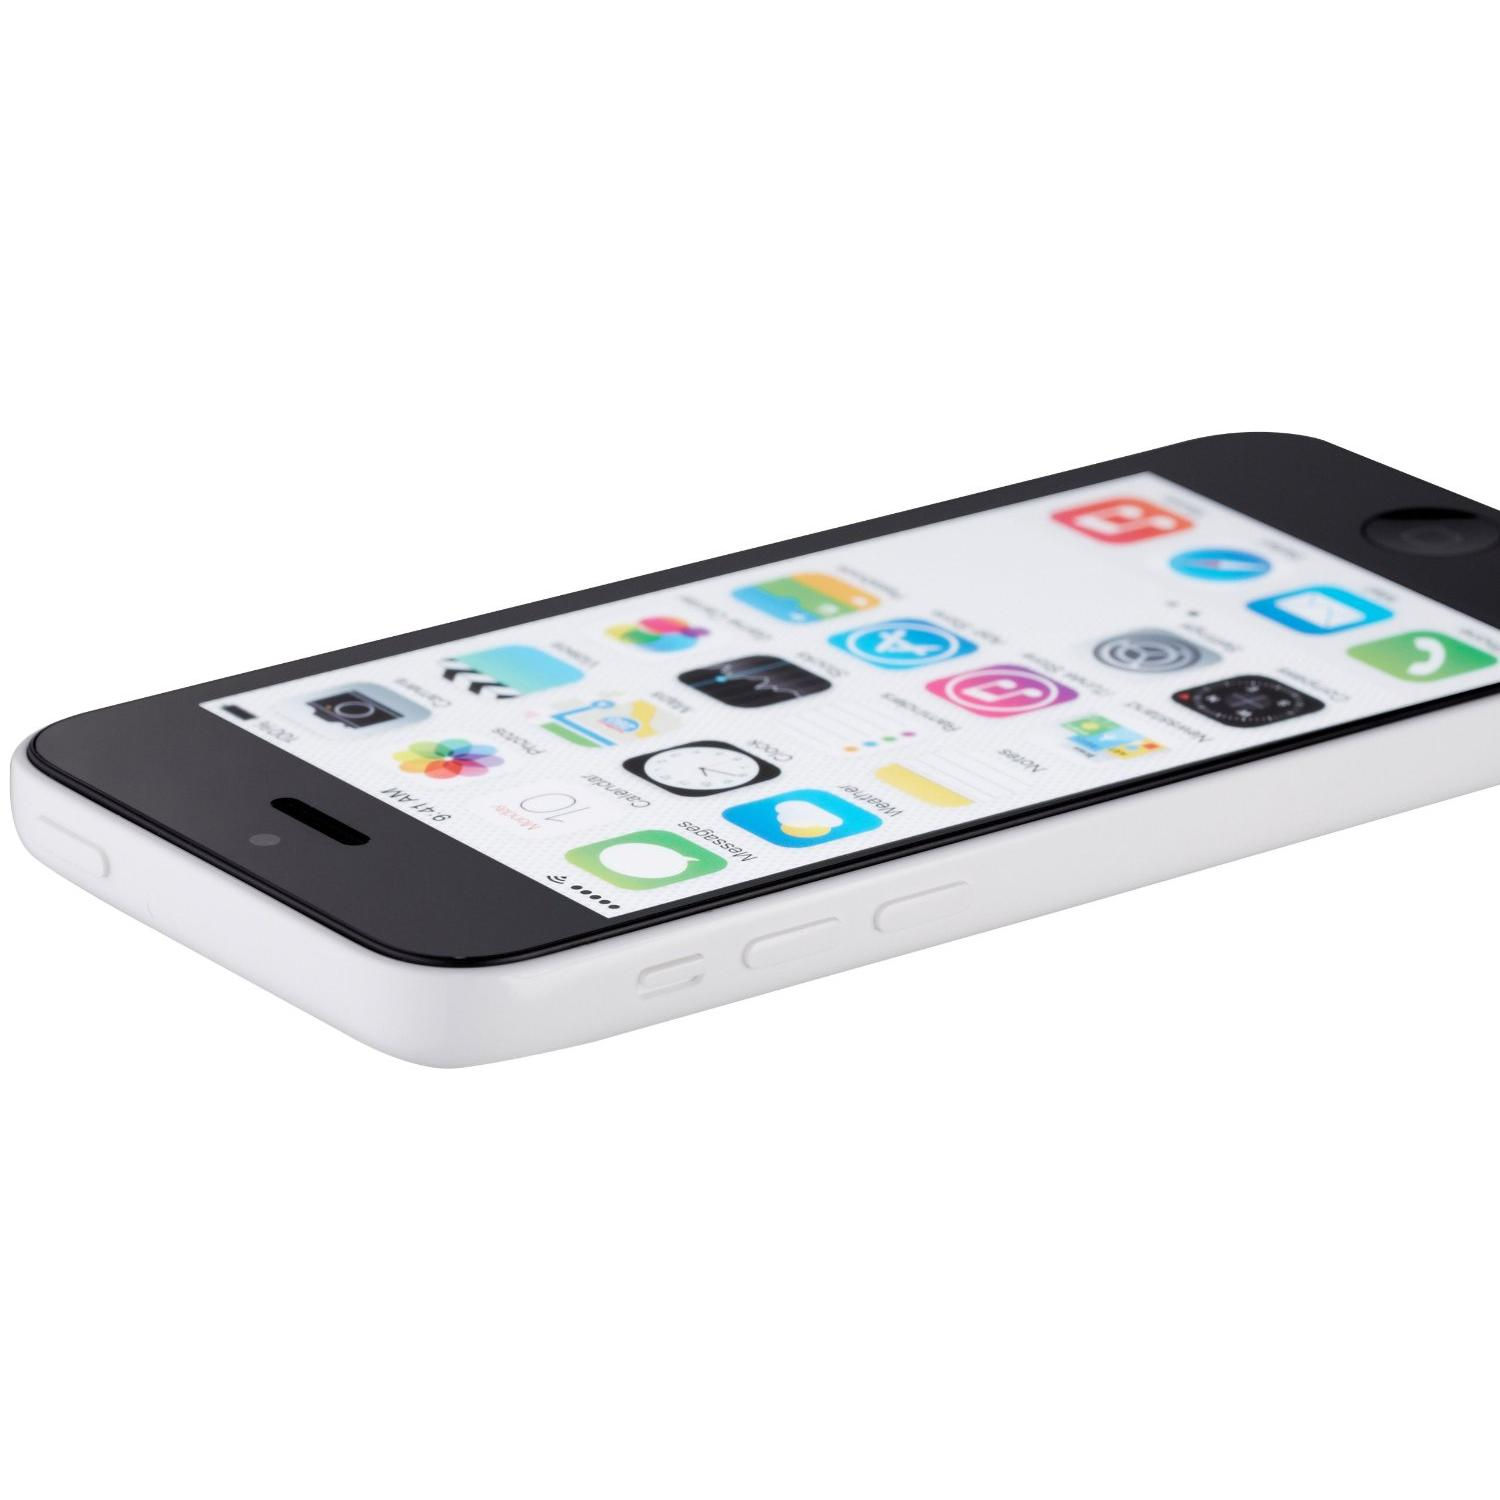 iPhone 5C 8 GB - Blanco - Libre